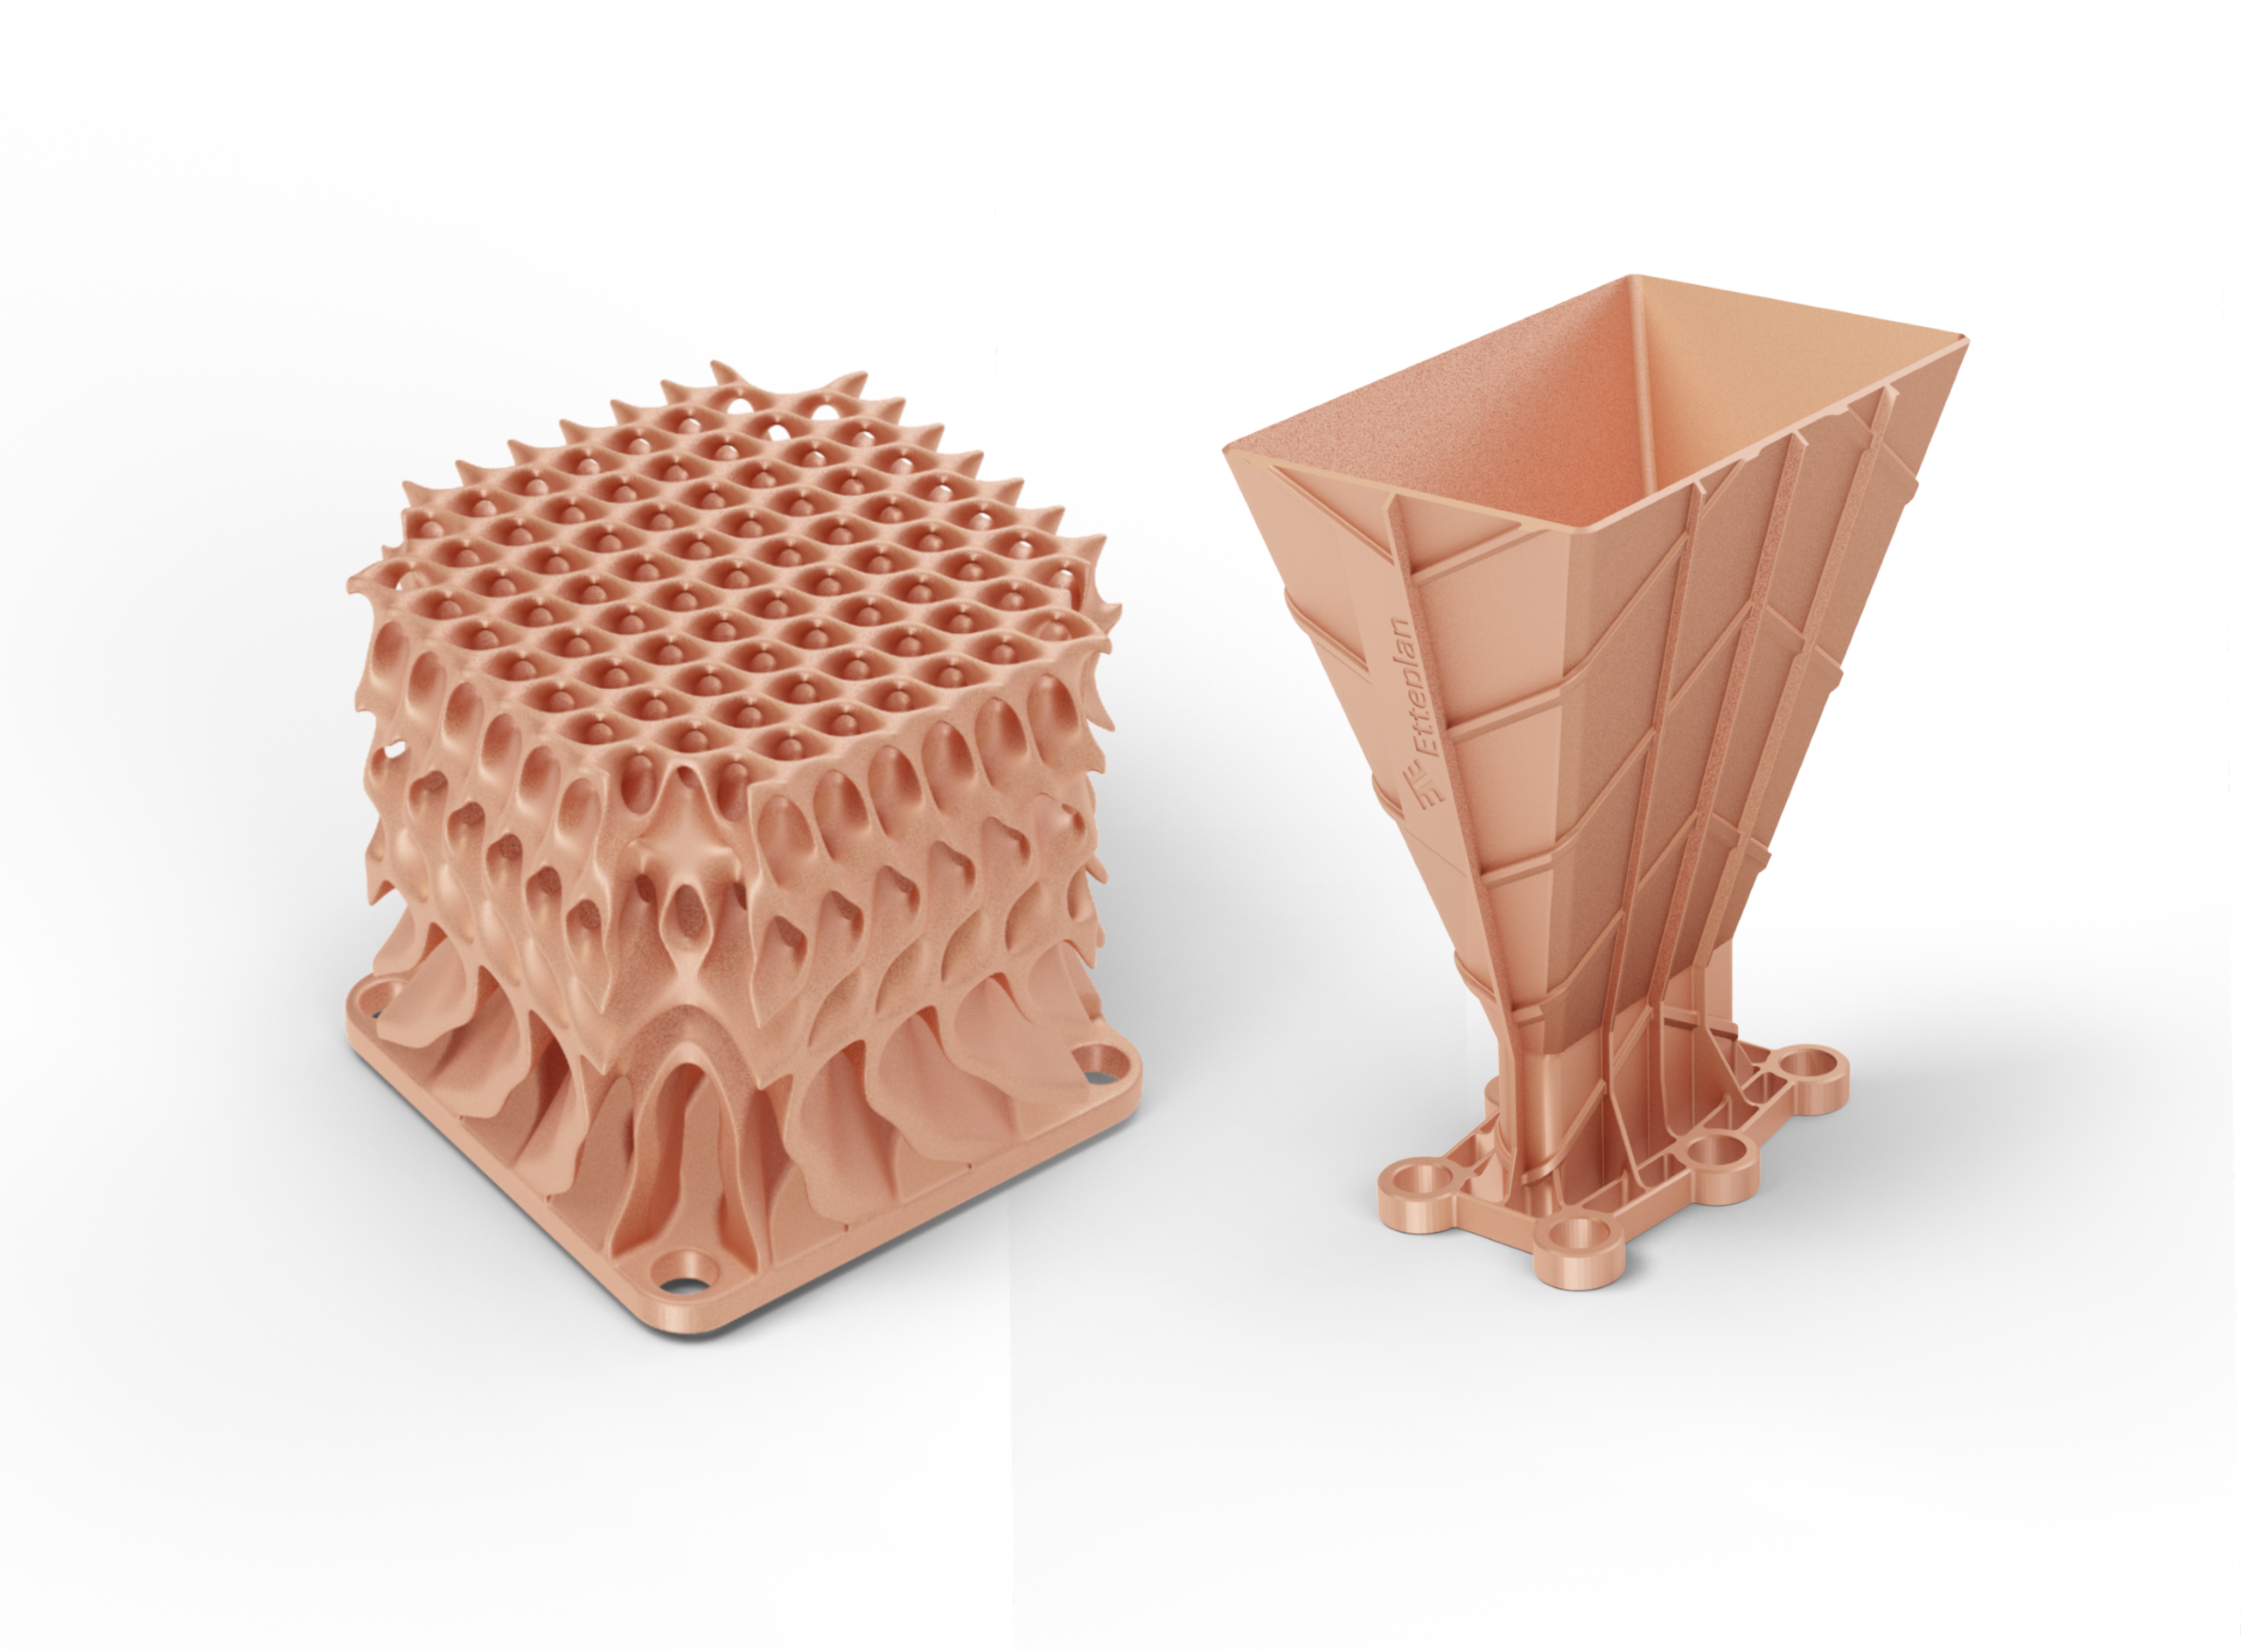 Pure copper parts 3D printed by Digital Metal.